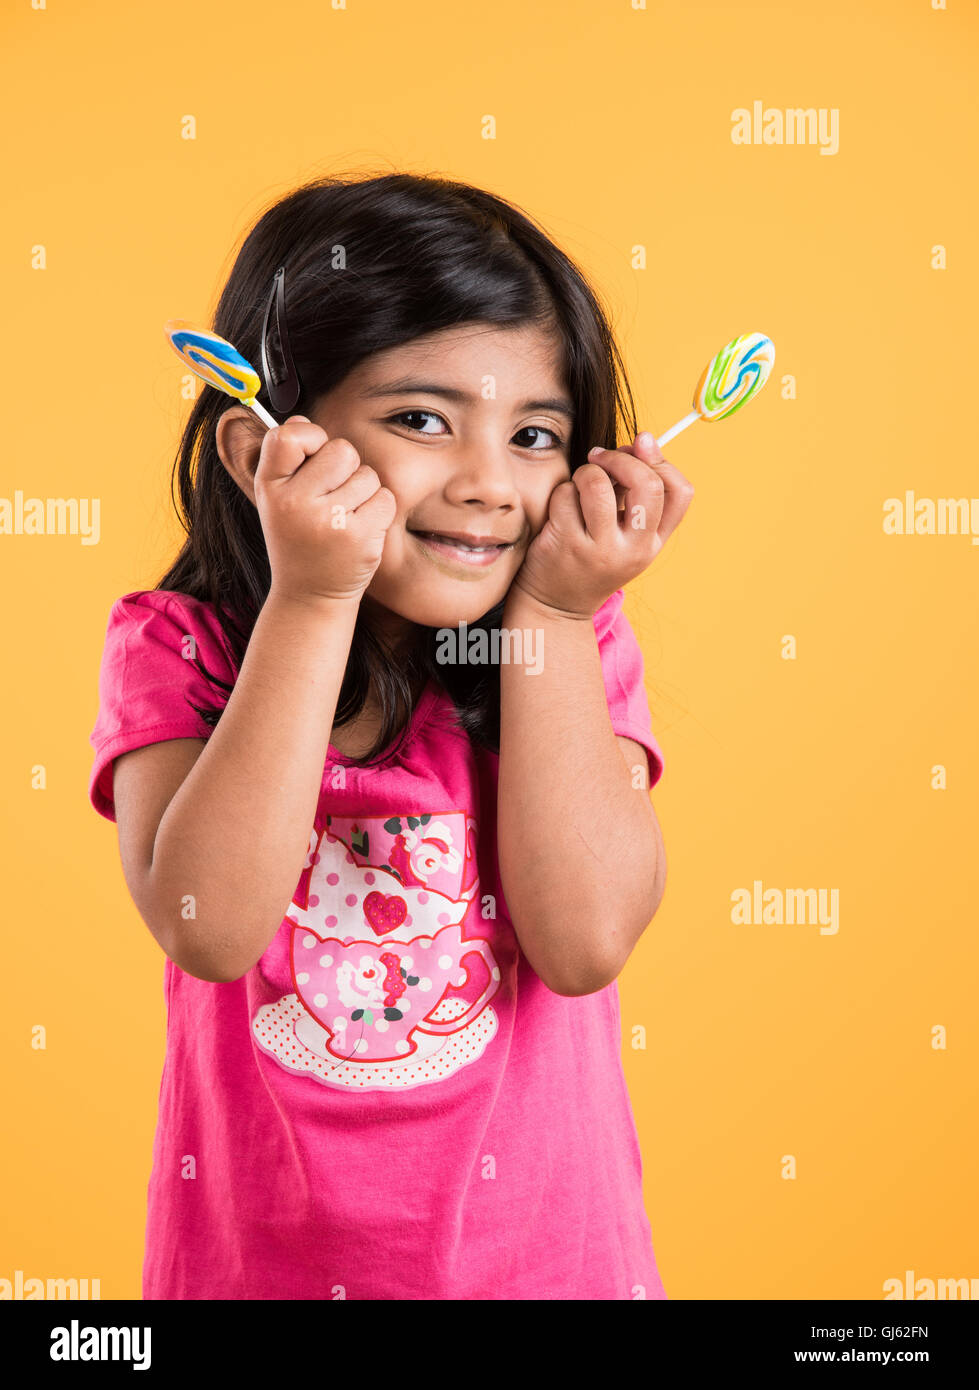 Indian Small Girl With Lolipop Or Loly Pop Asian Girl And Lolipop Or Lolypop